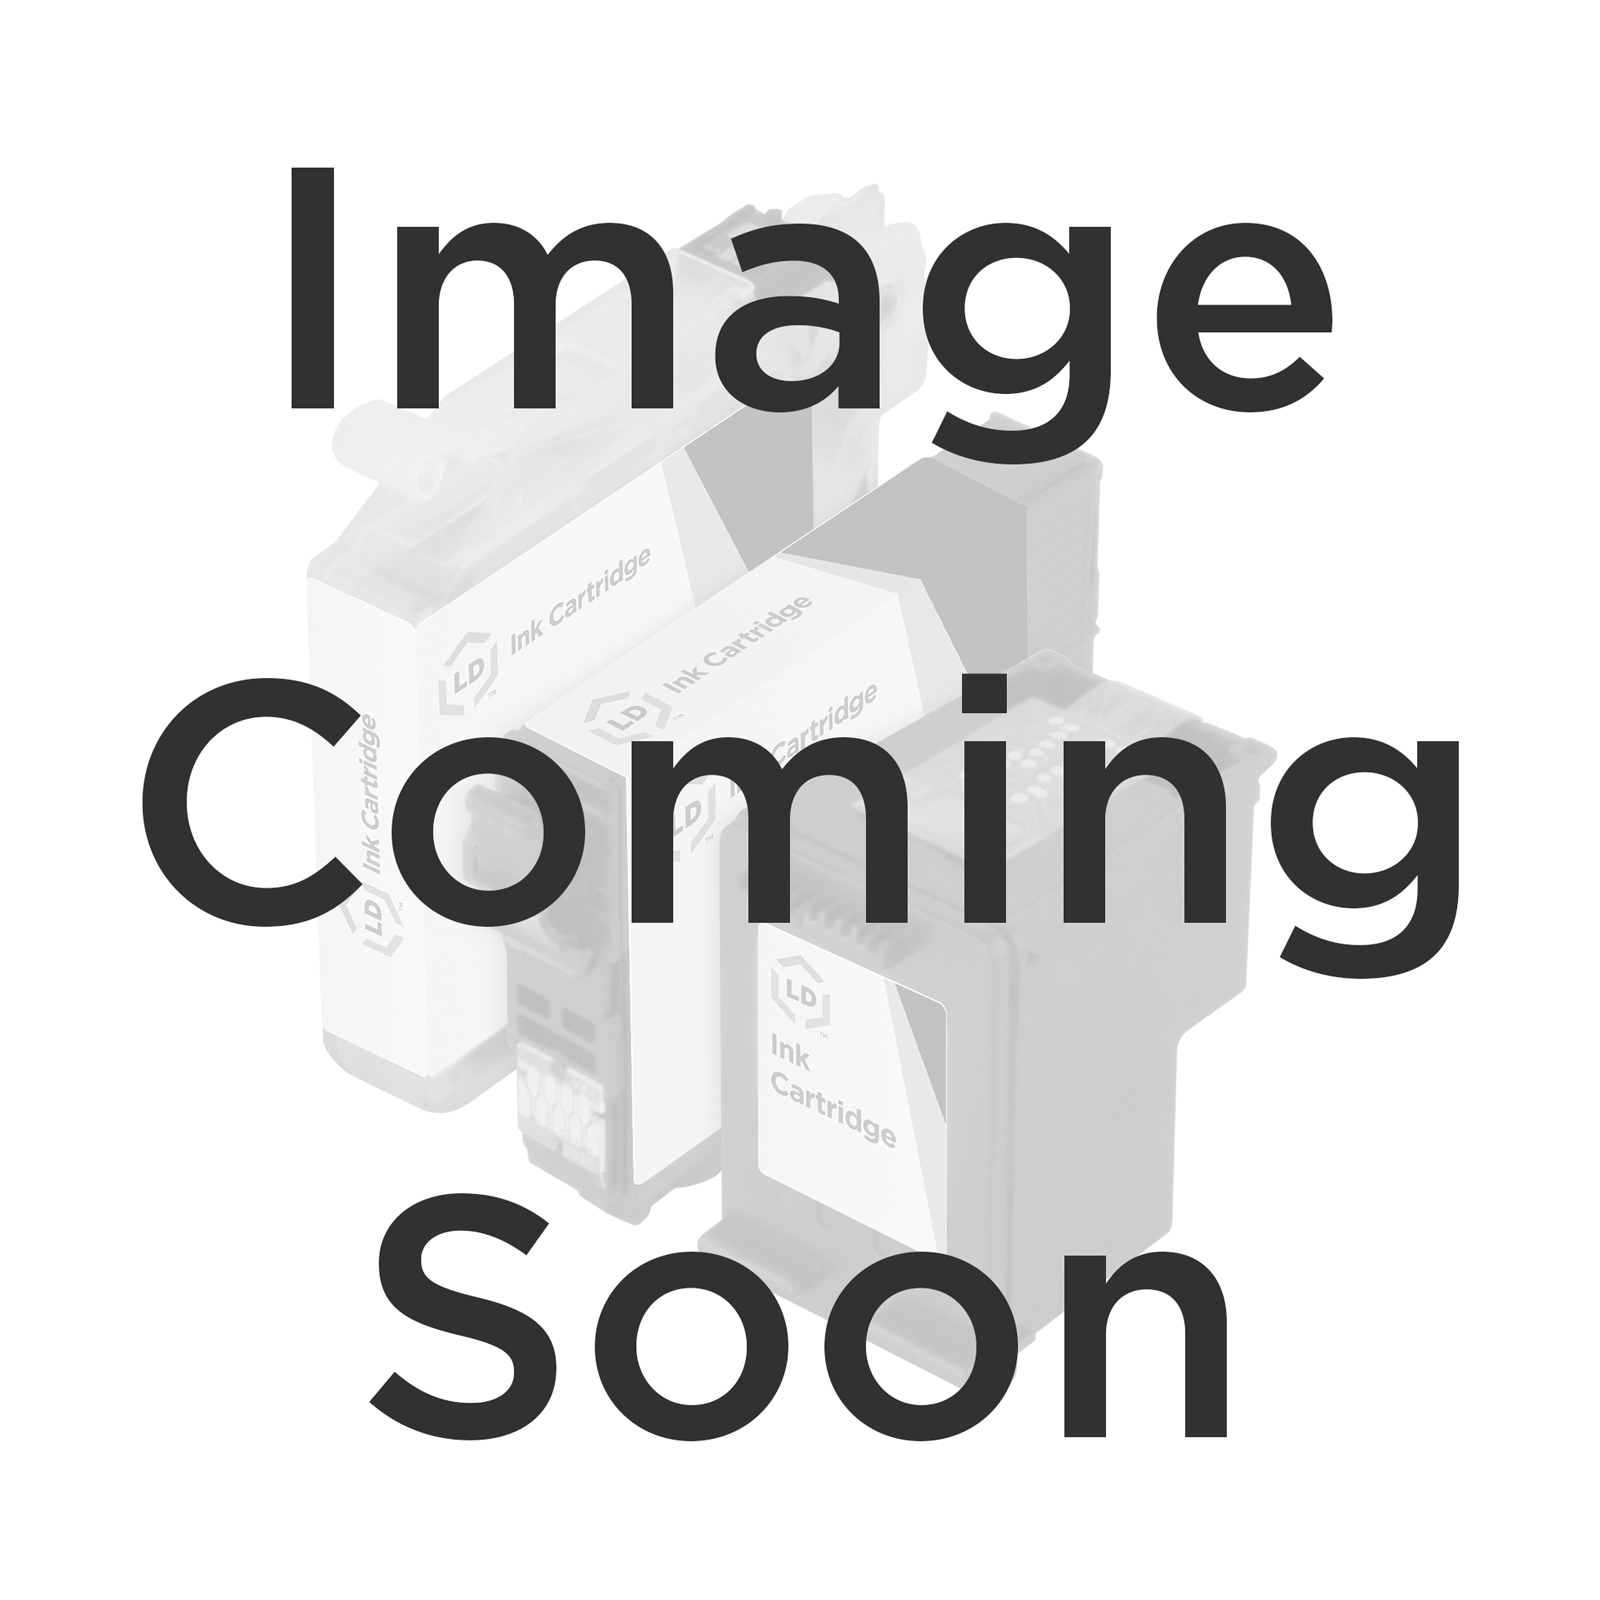 Weekly Timesheet Form